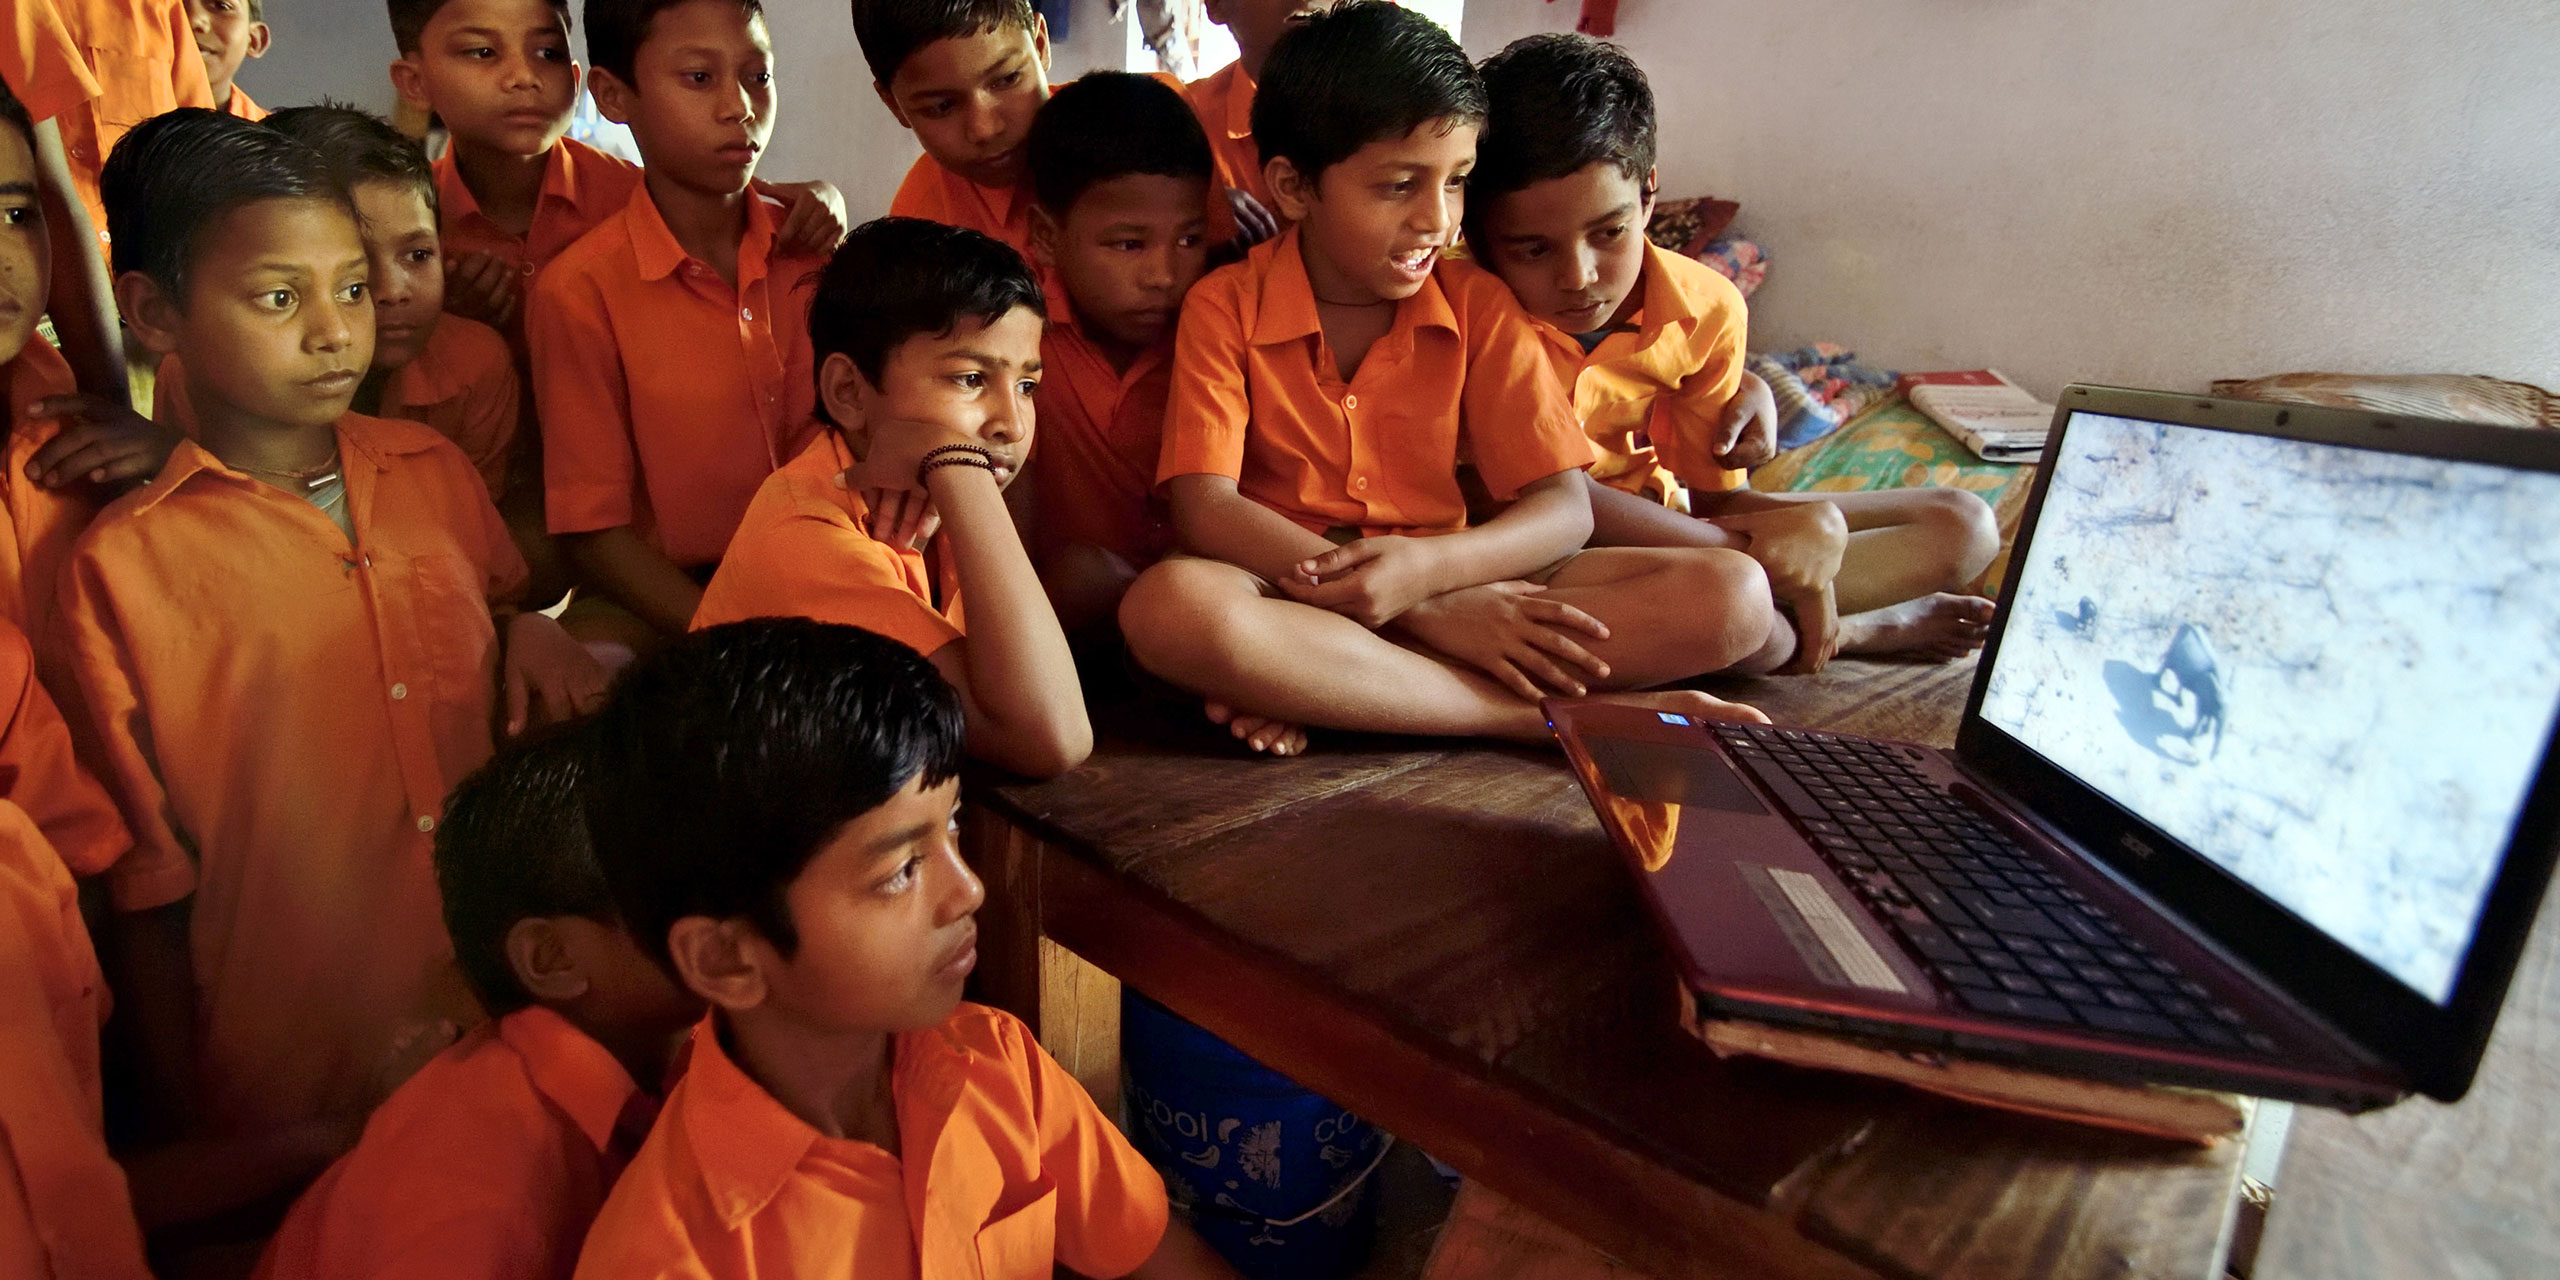 children watching a video on a laptop